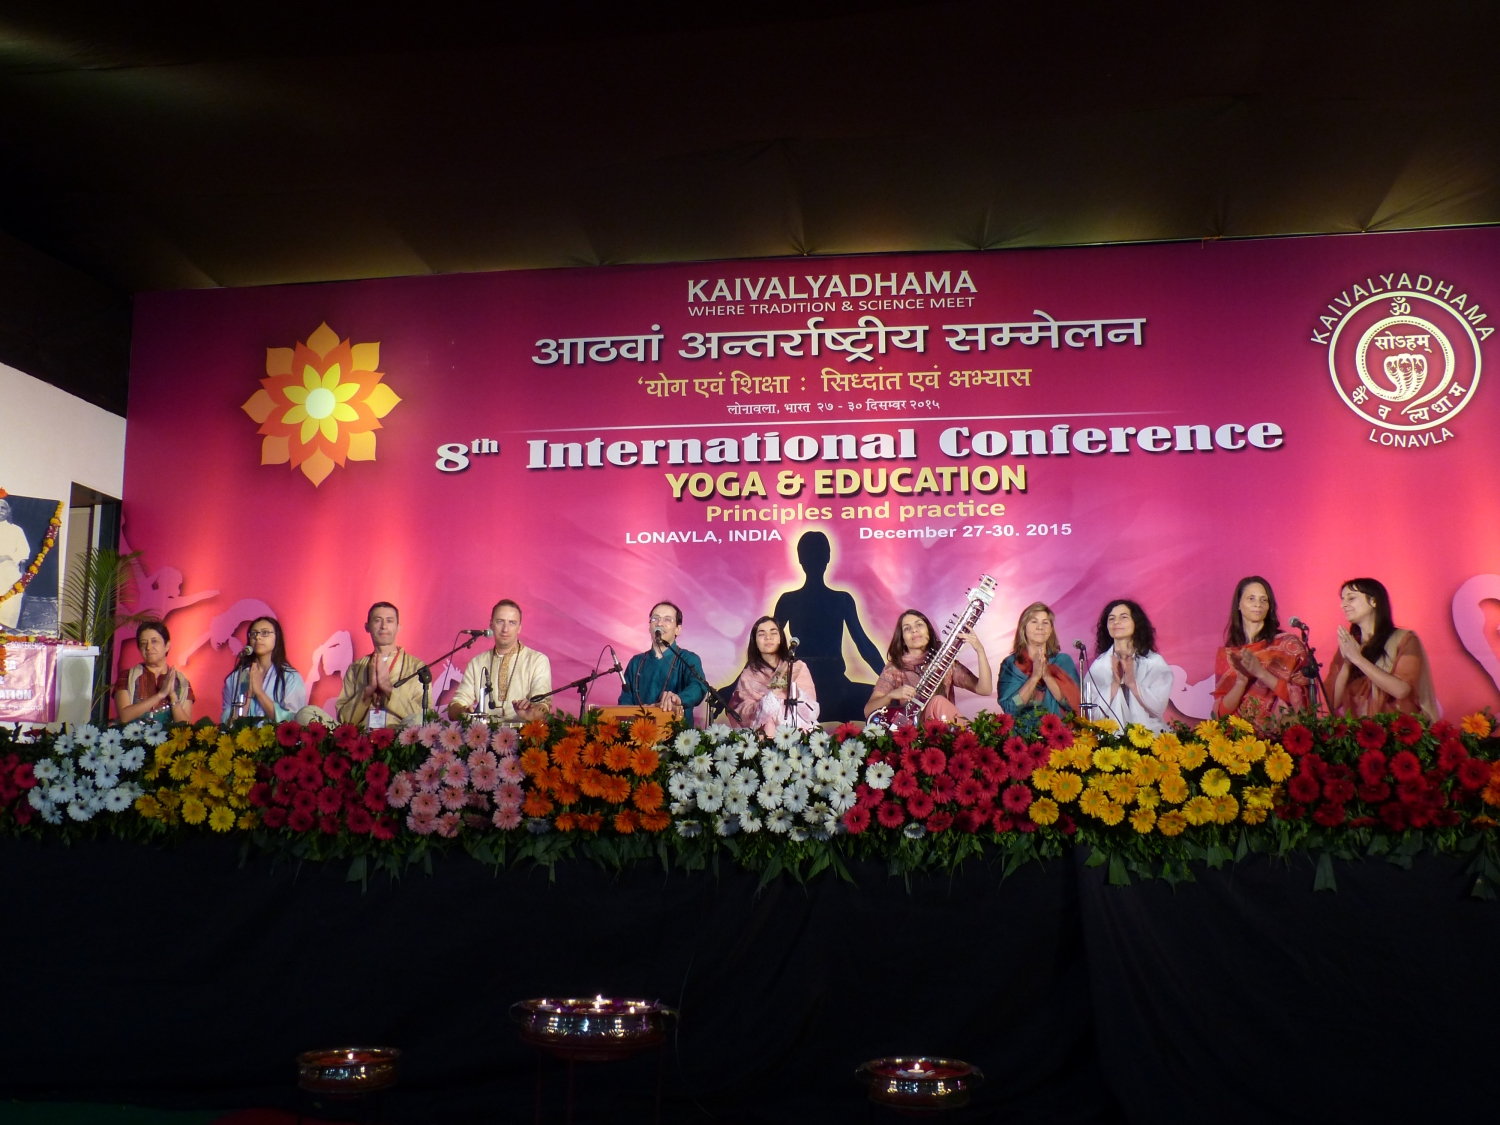 8th International Conference, Yoga & Education, Principles and Practice - Keivalyadhama Yoga Institute, Lonavala, India - 2015, December